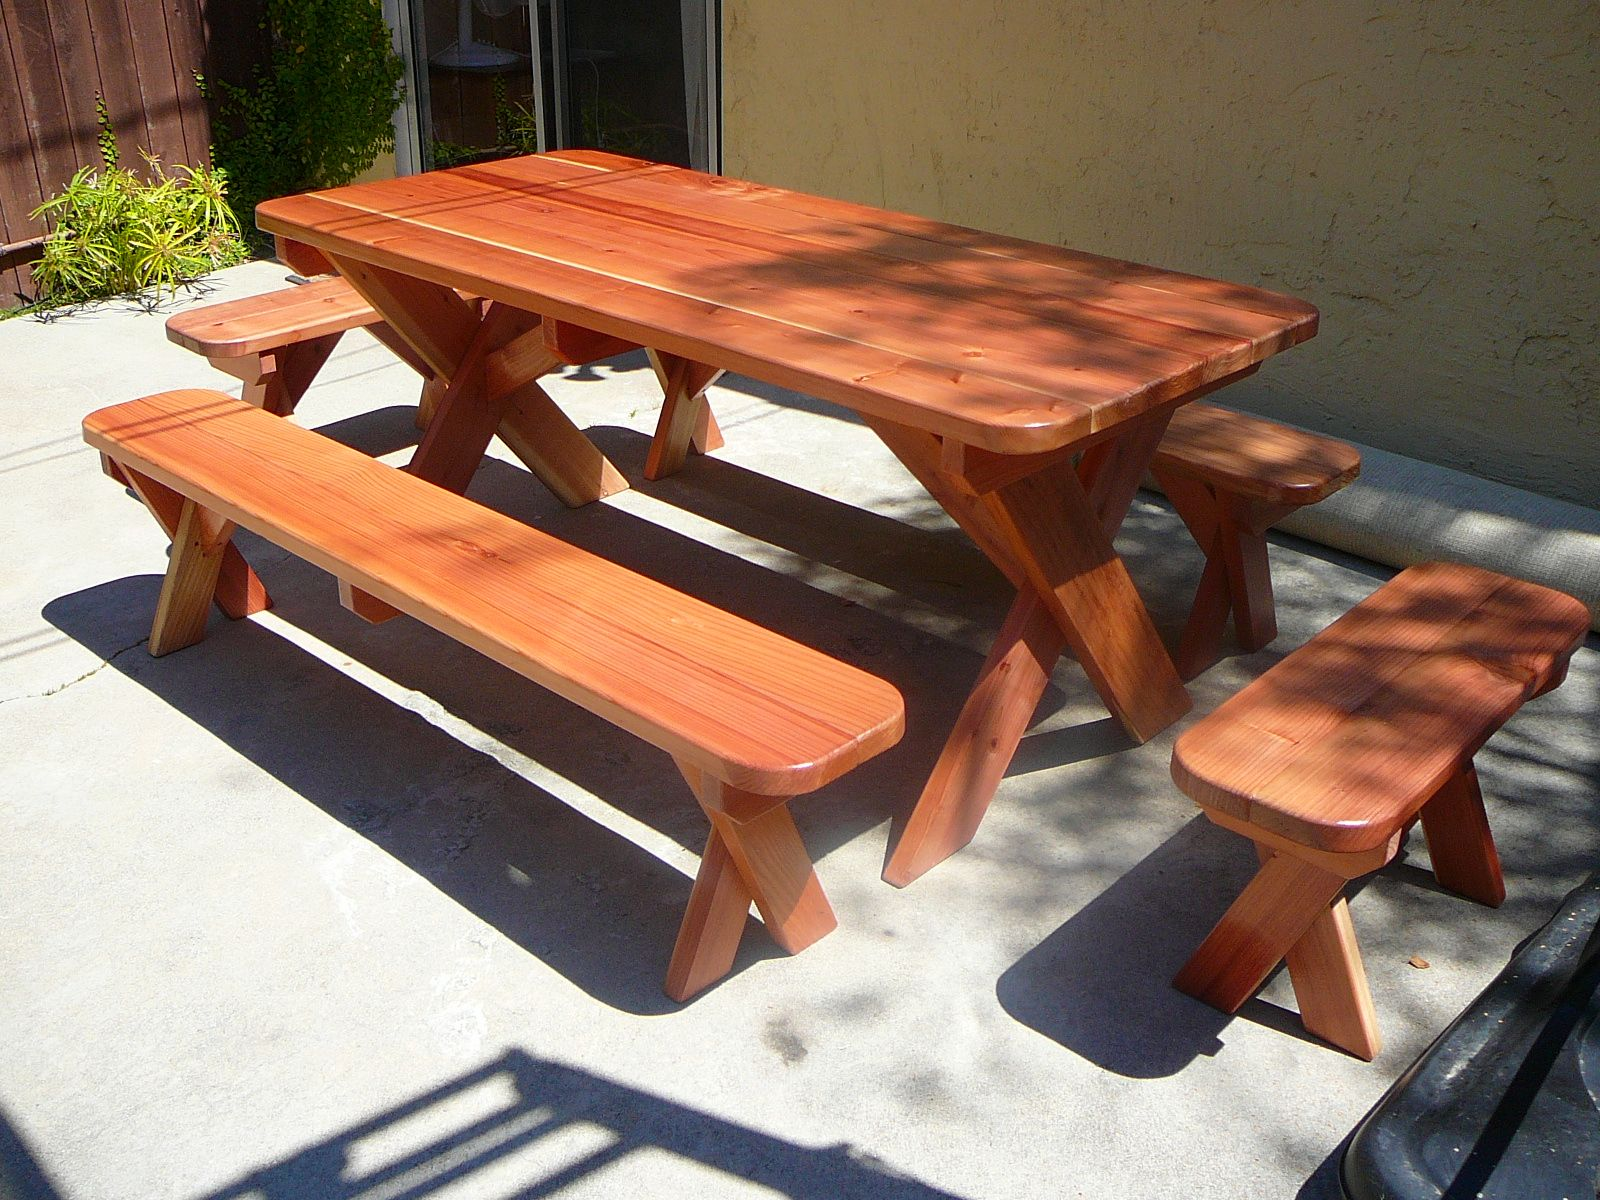 Picnic Table Bench Plans | 6ft. Redwood Picnic Table And 4 Benches